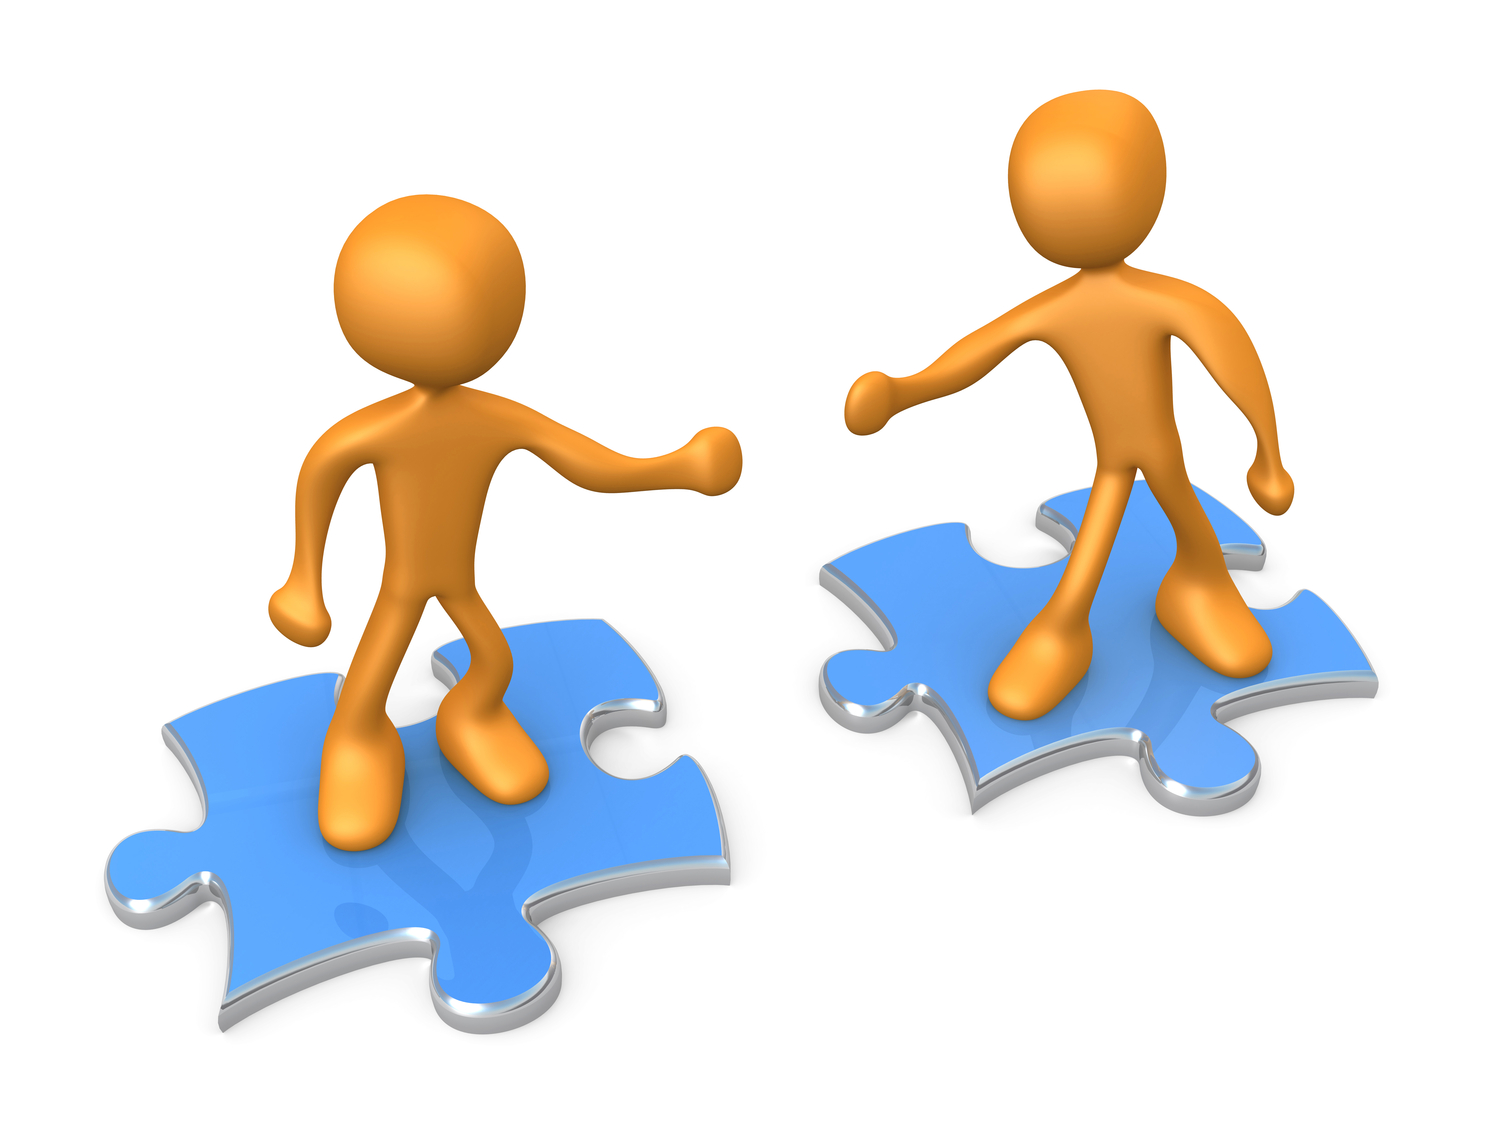 Meeting clipart free images 6 2